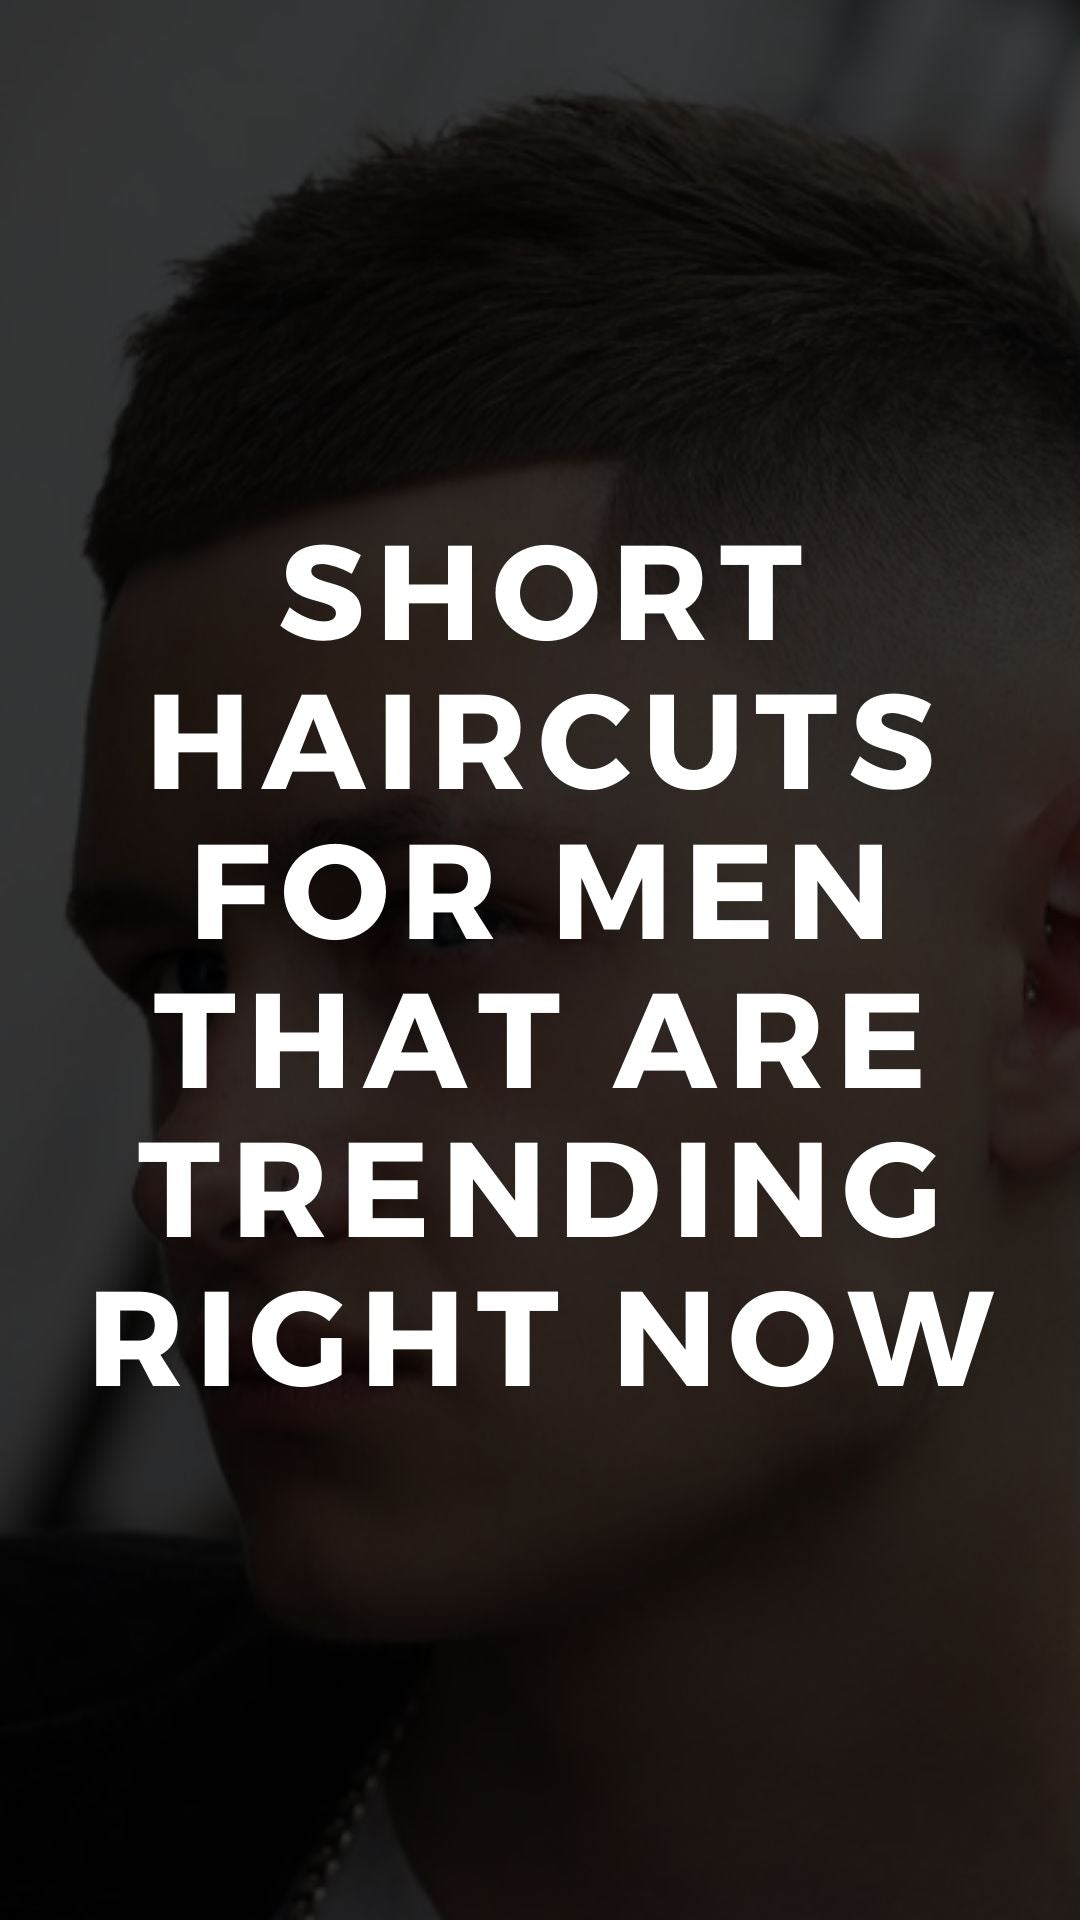 Short Haircuts for Men That Are Trending Right Now